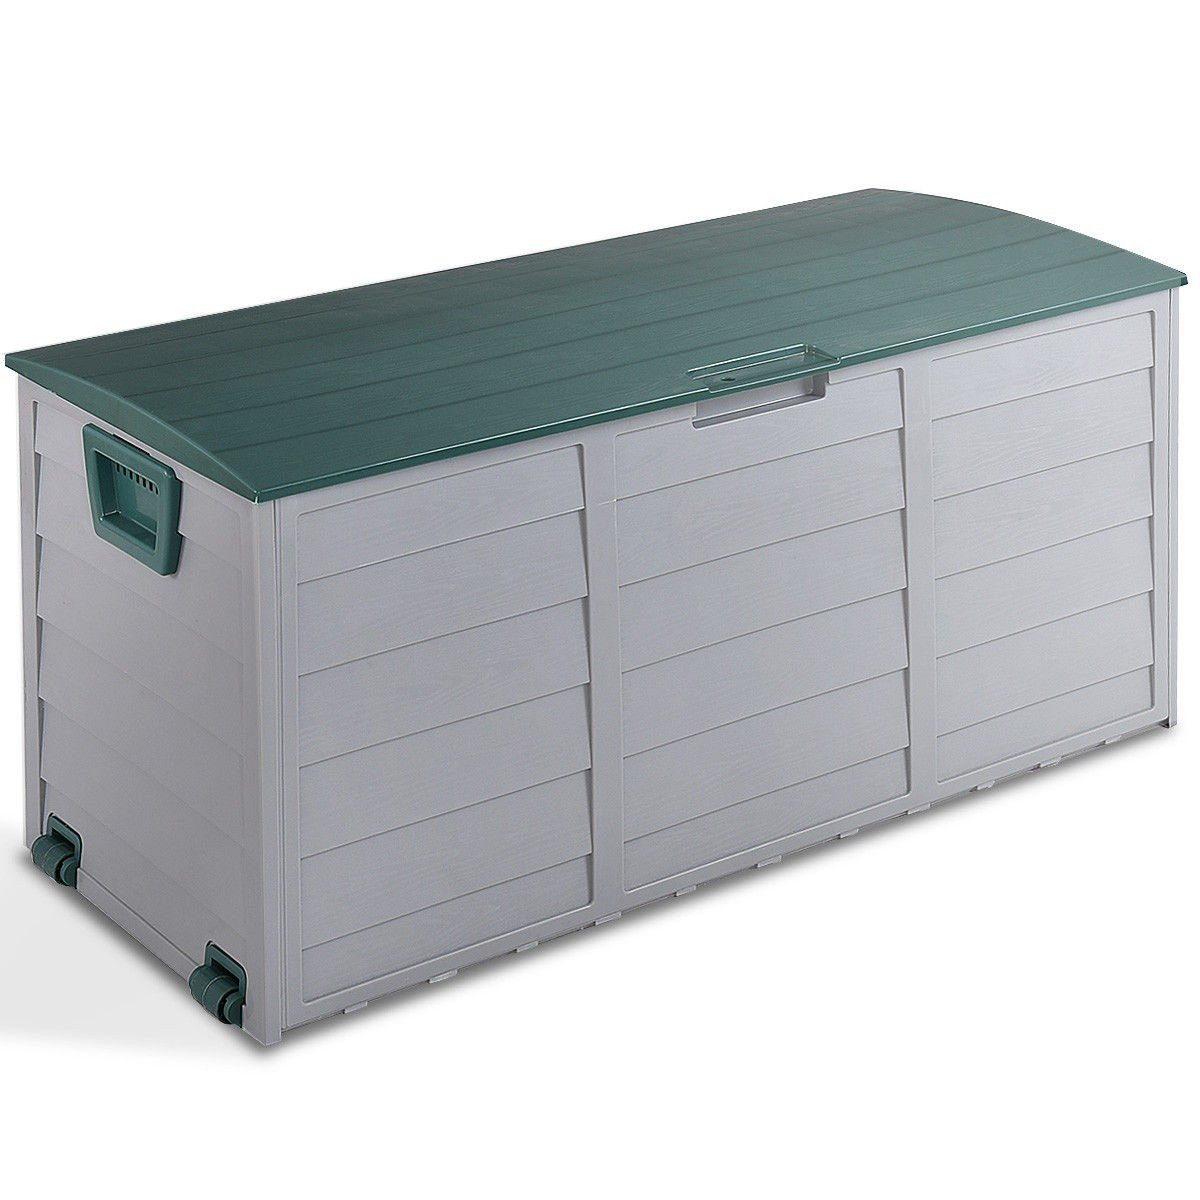 MD Group Outdoor Box Plastic Storage Waterproof Container Bench Case 70 Gallon Durable Lockable Lid mdg MDG-01-642825